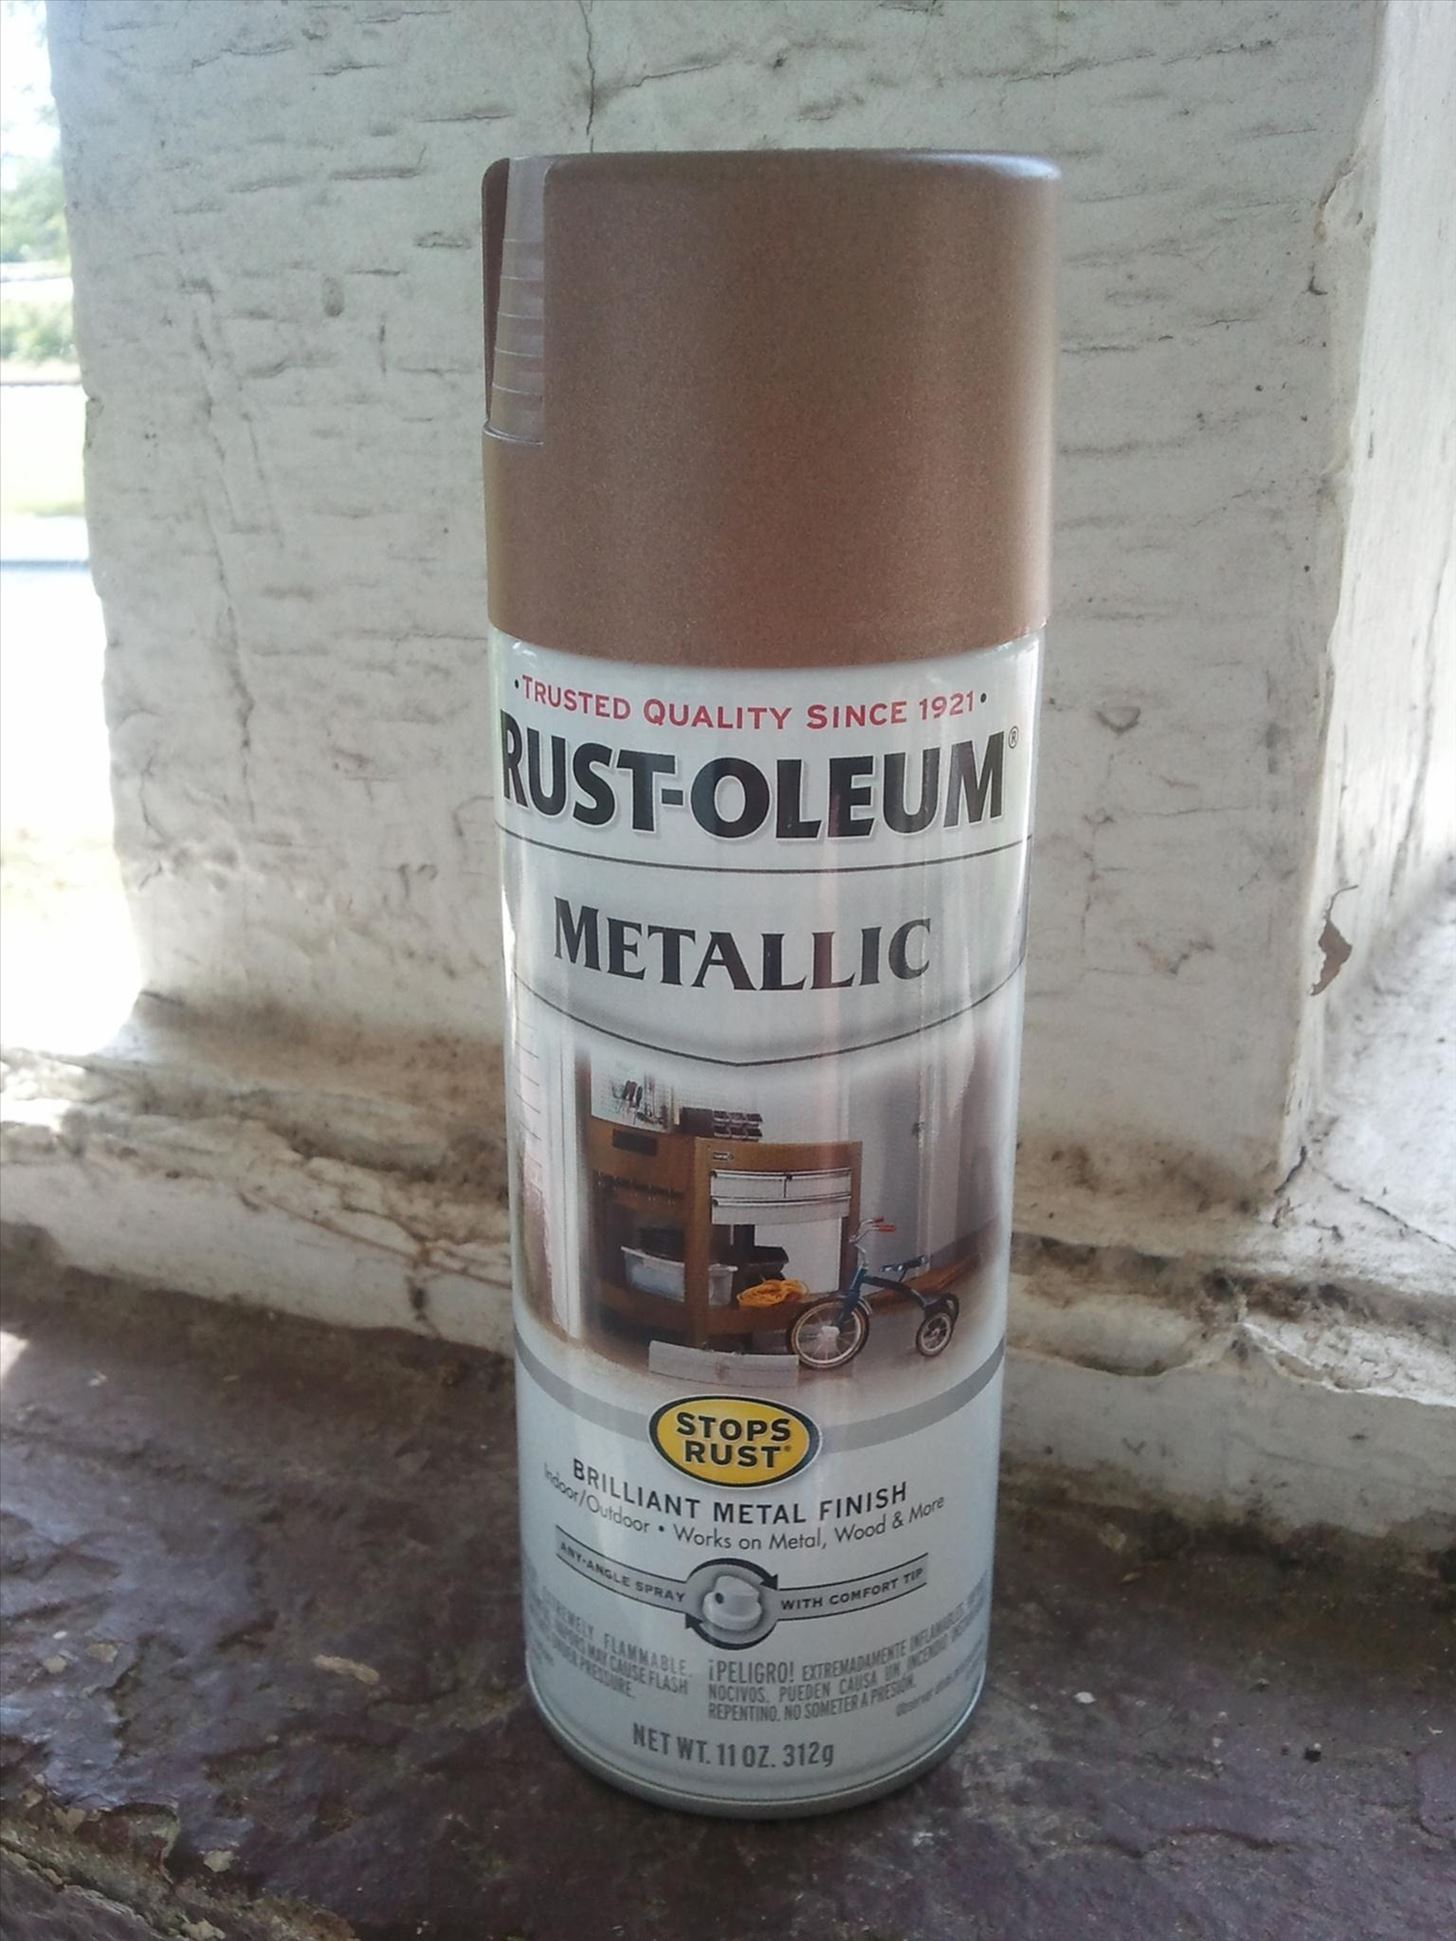 Steampunk Spray Painting: How to Make Almost Anything Look Like Metal